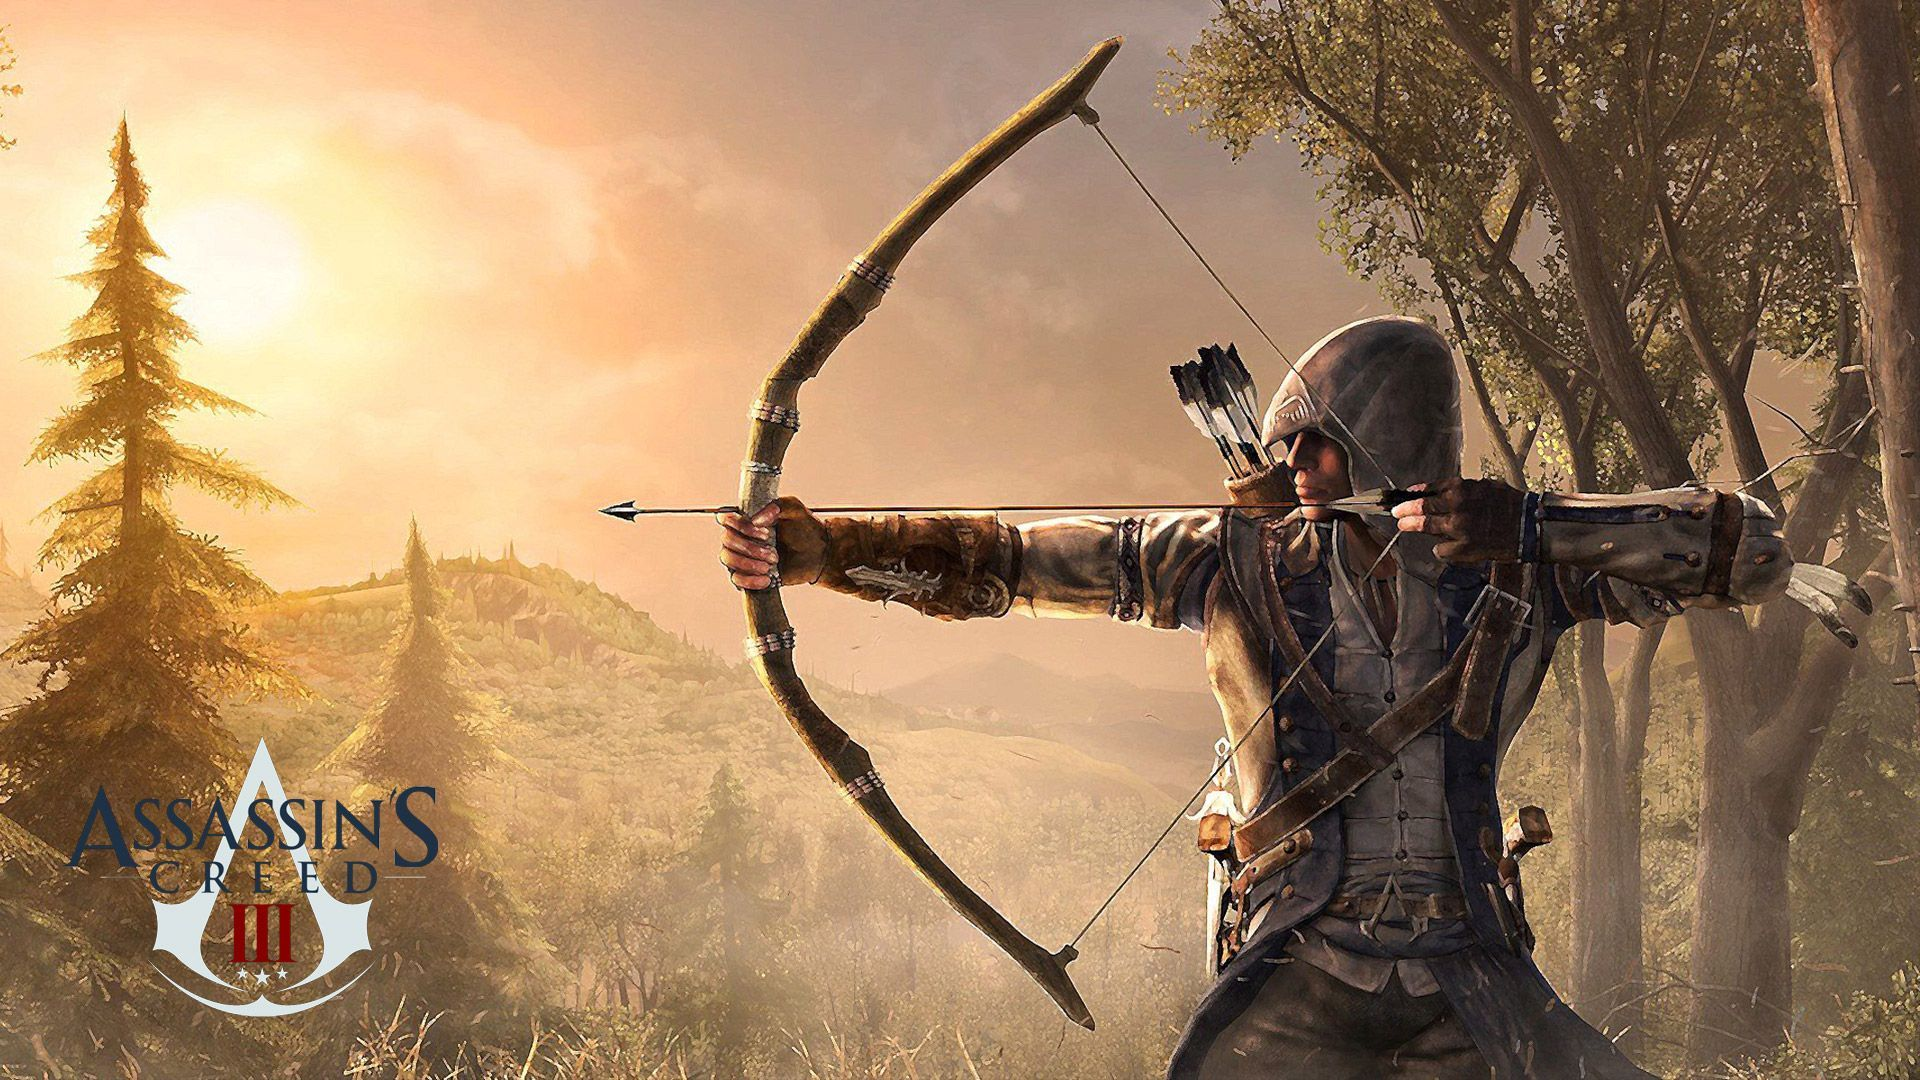 High Definition Images Collection Of Assassin S Creed Hasdrubal